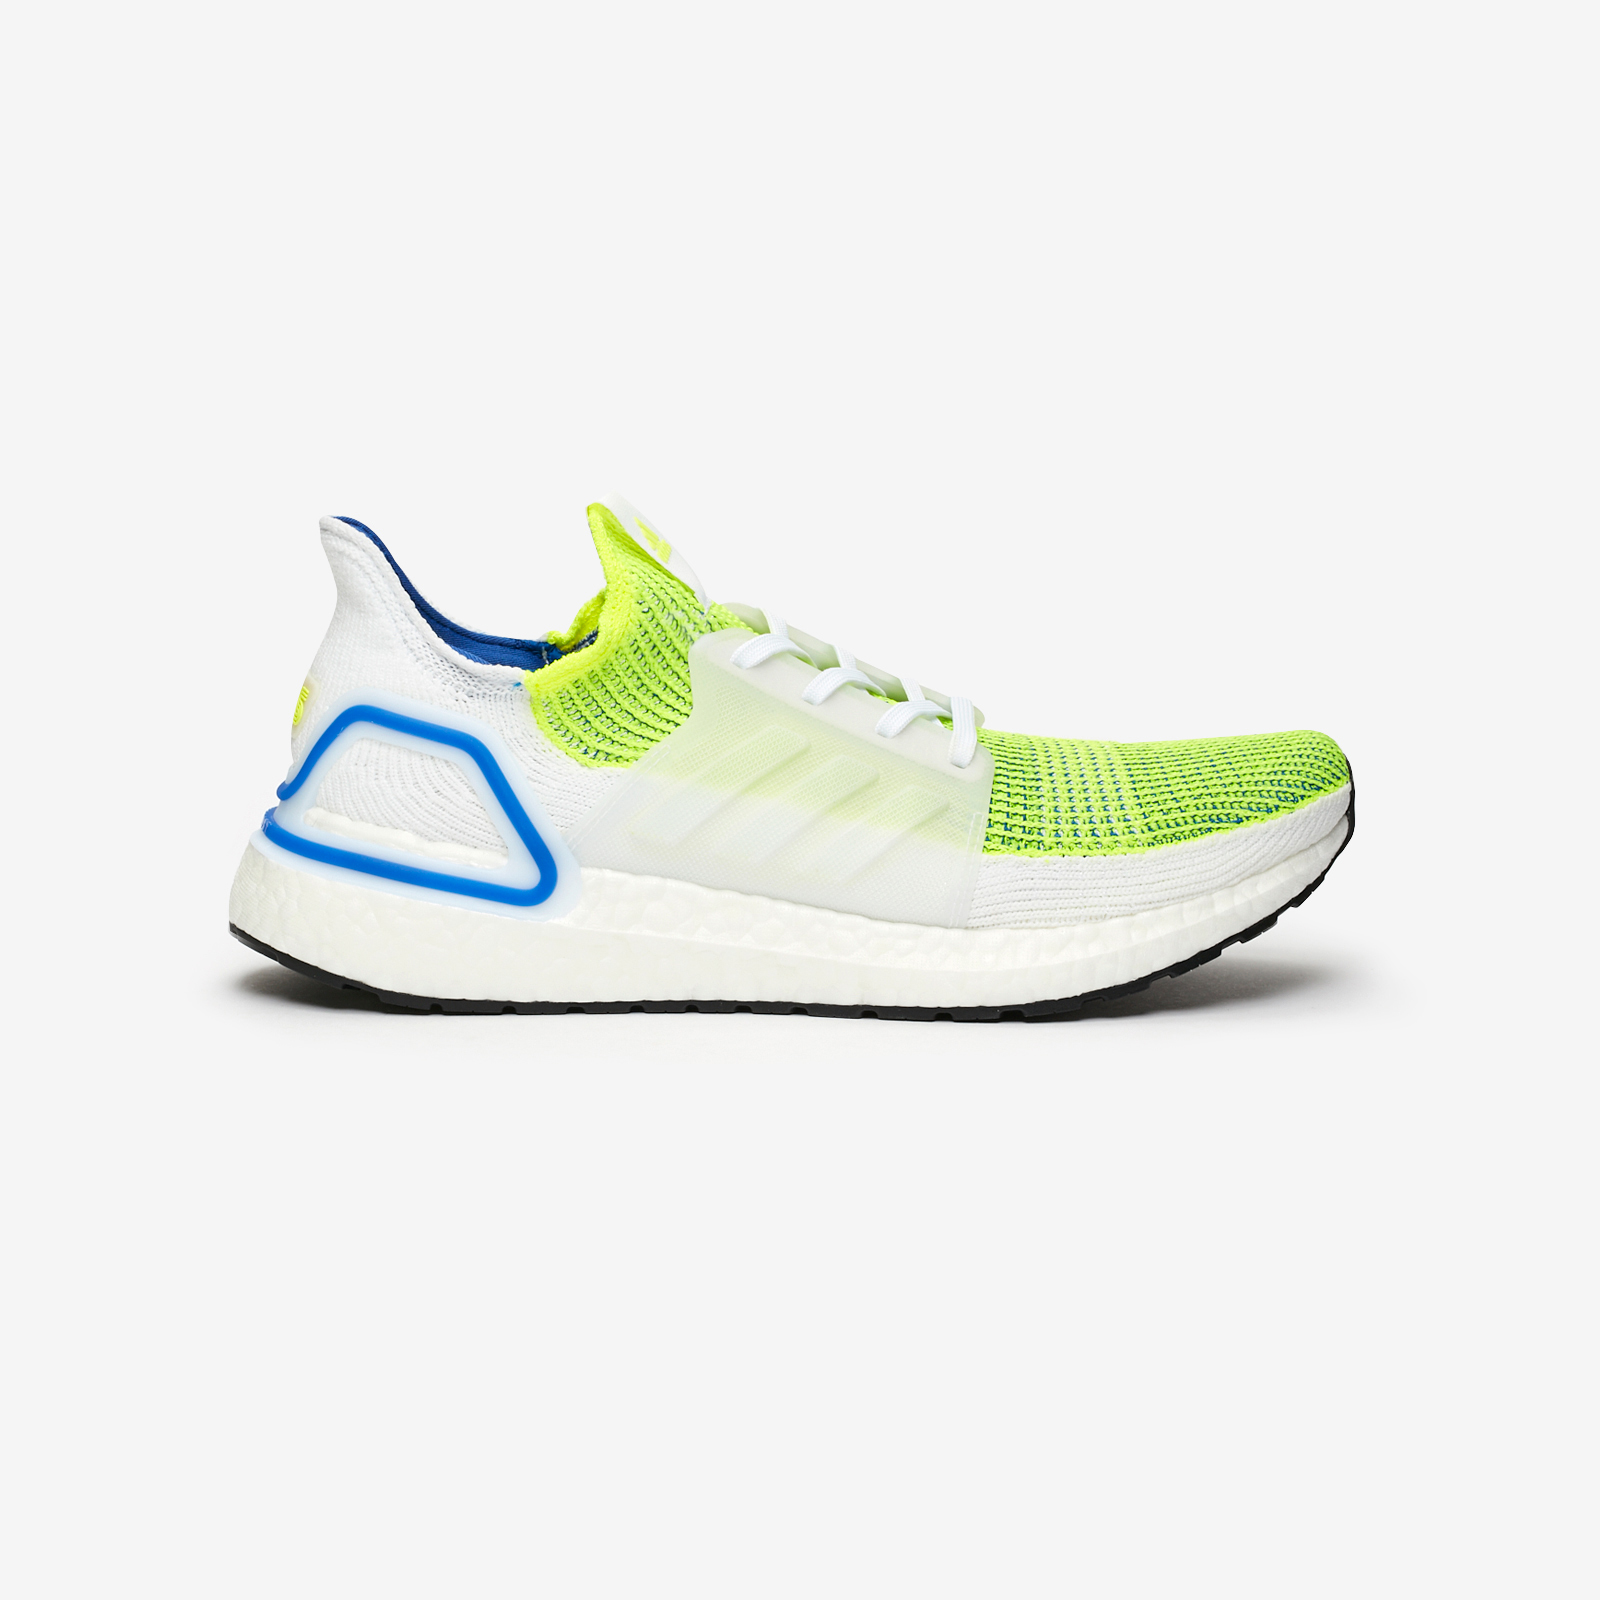 adidas UltraBOOST 19 'Special Delivery' x SNS Fv6012